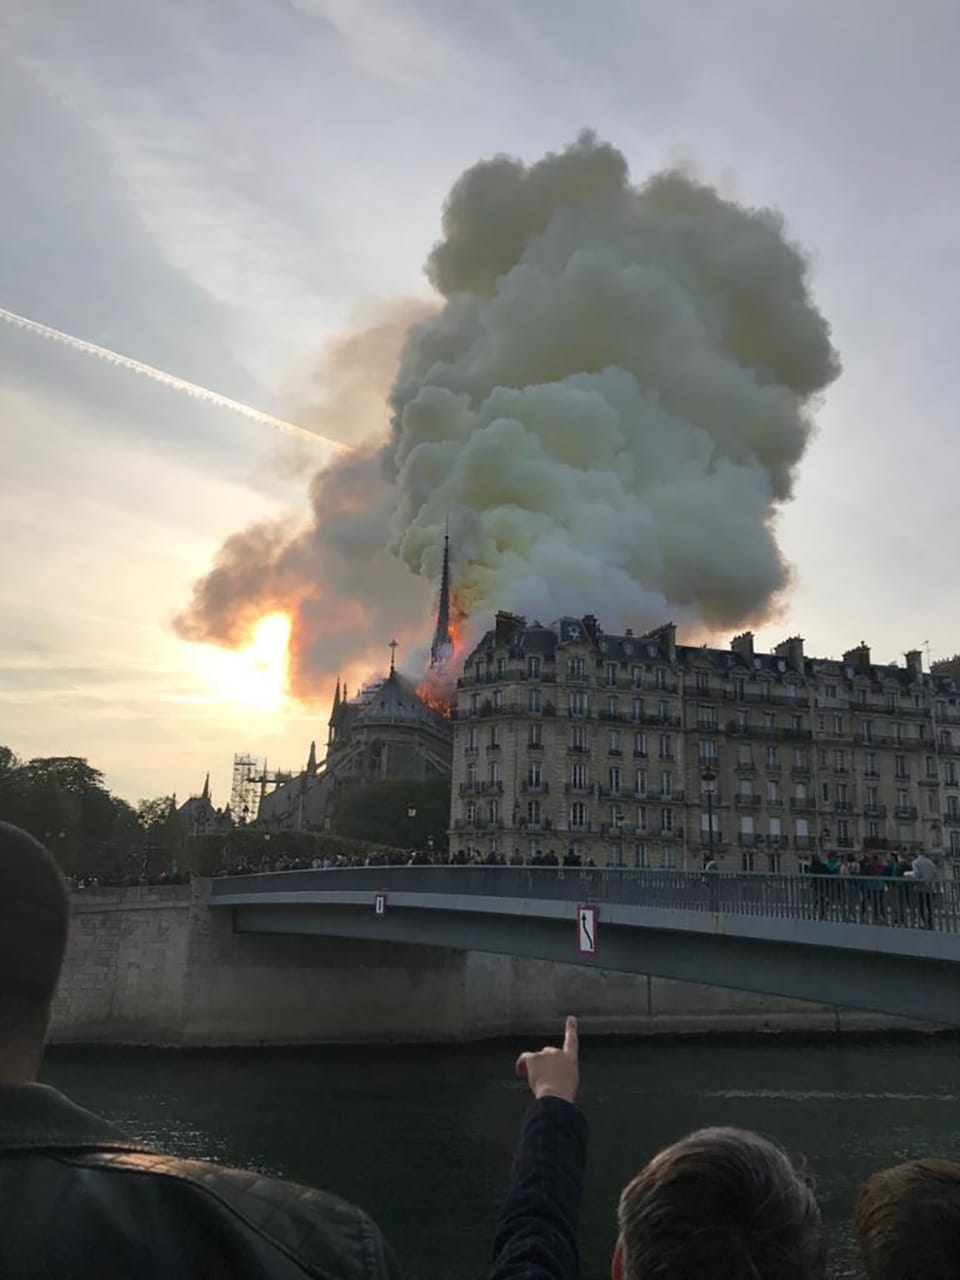 Incendio en la Catedral de Notre Dame. Foto: Getty